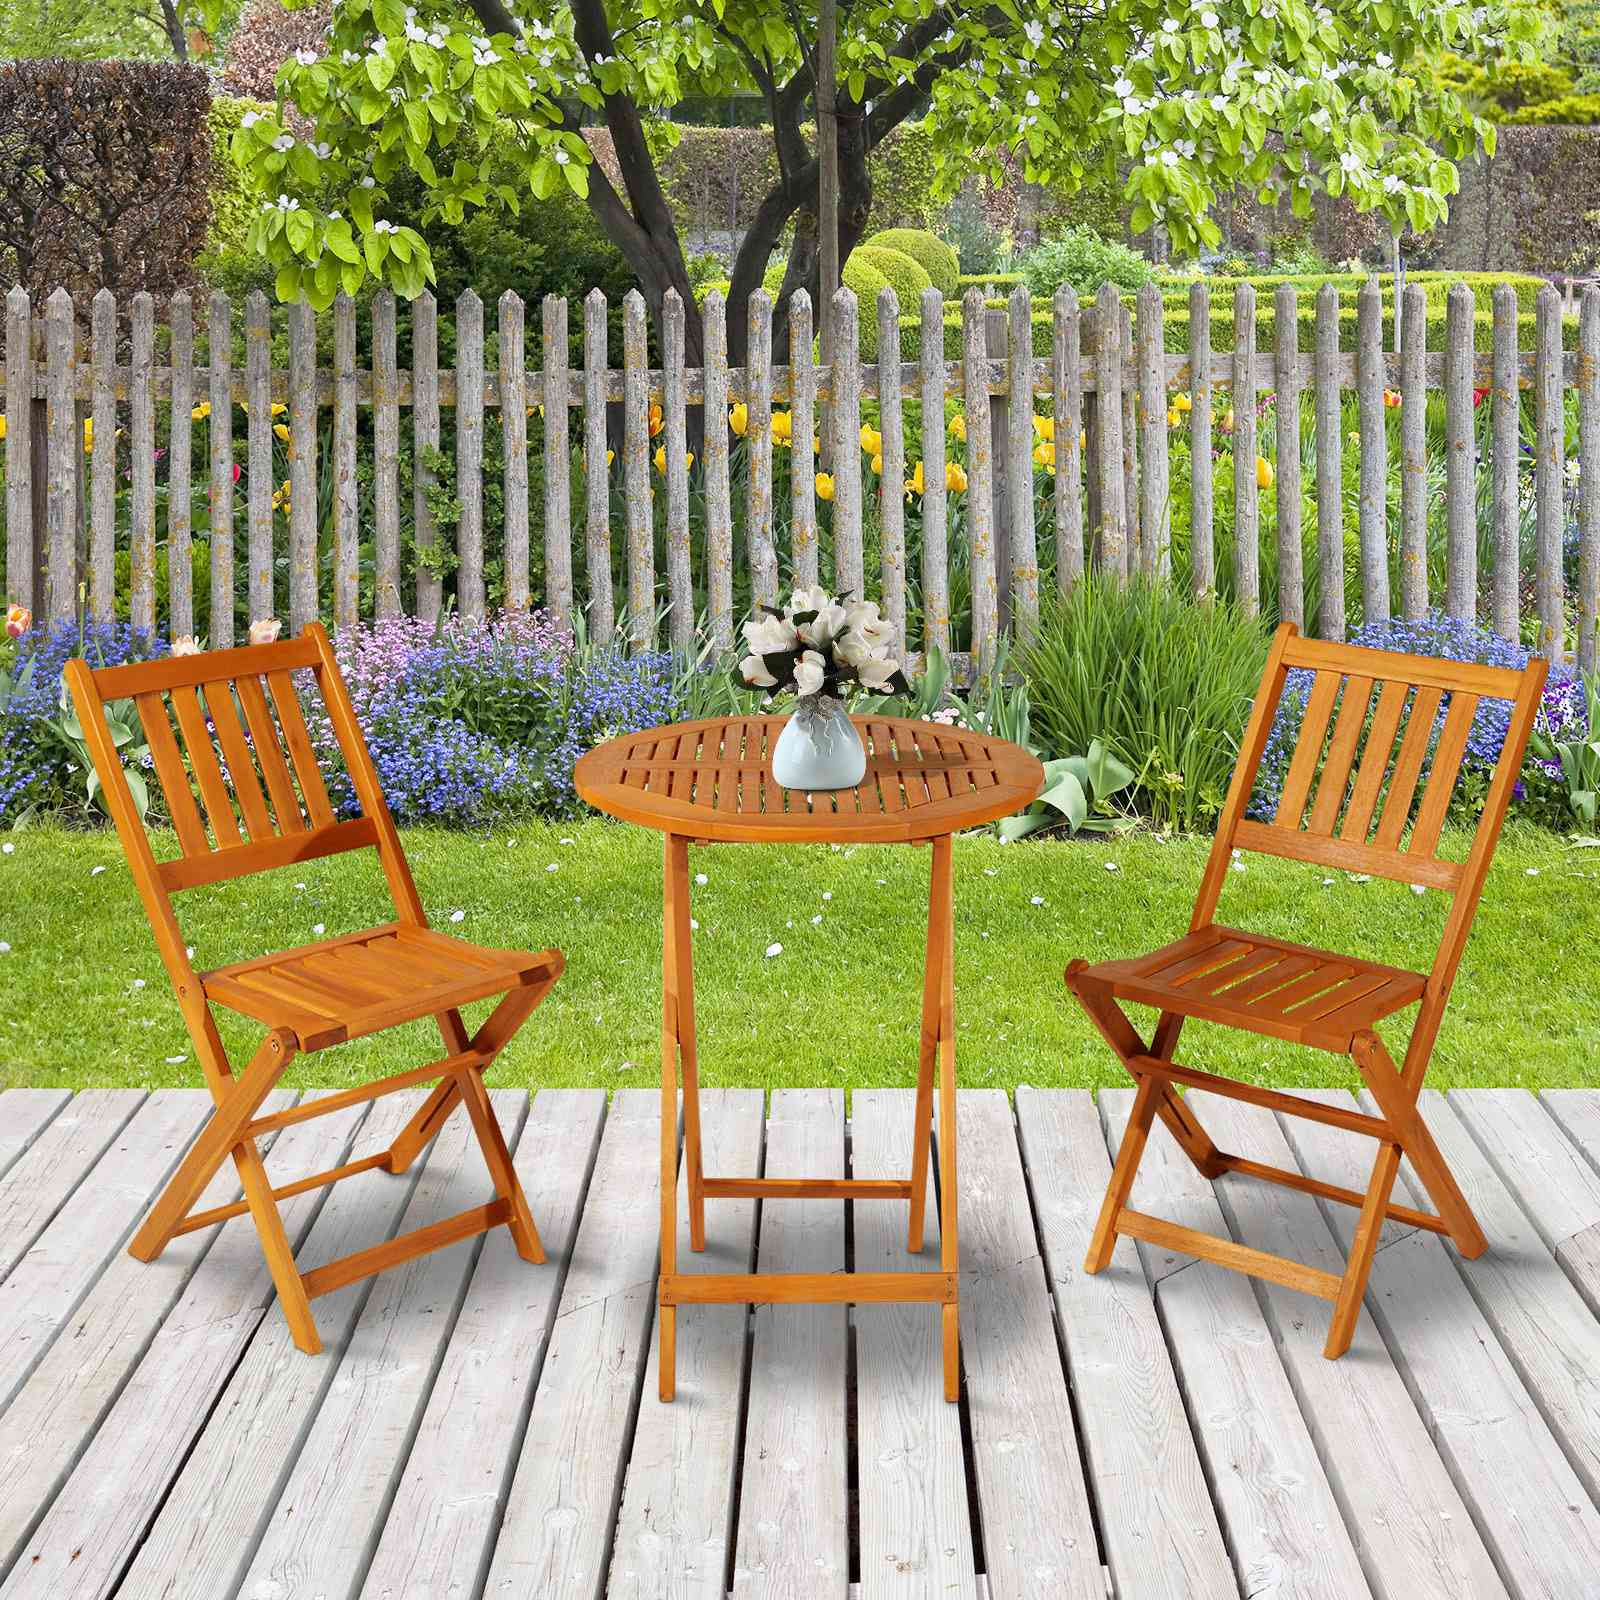 Outsunny 3 Piece Folding Acacia Wood Patio Bistro Set Table and Chairs